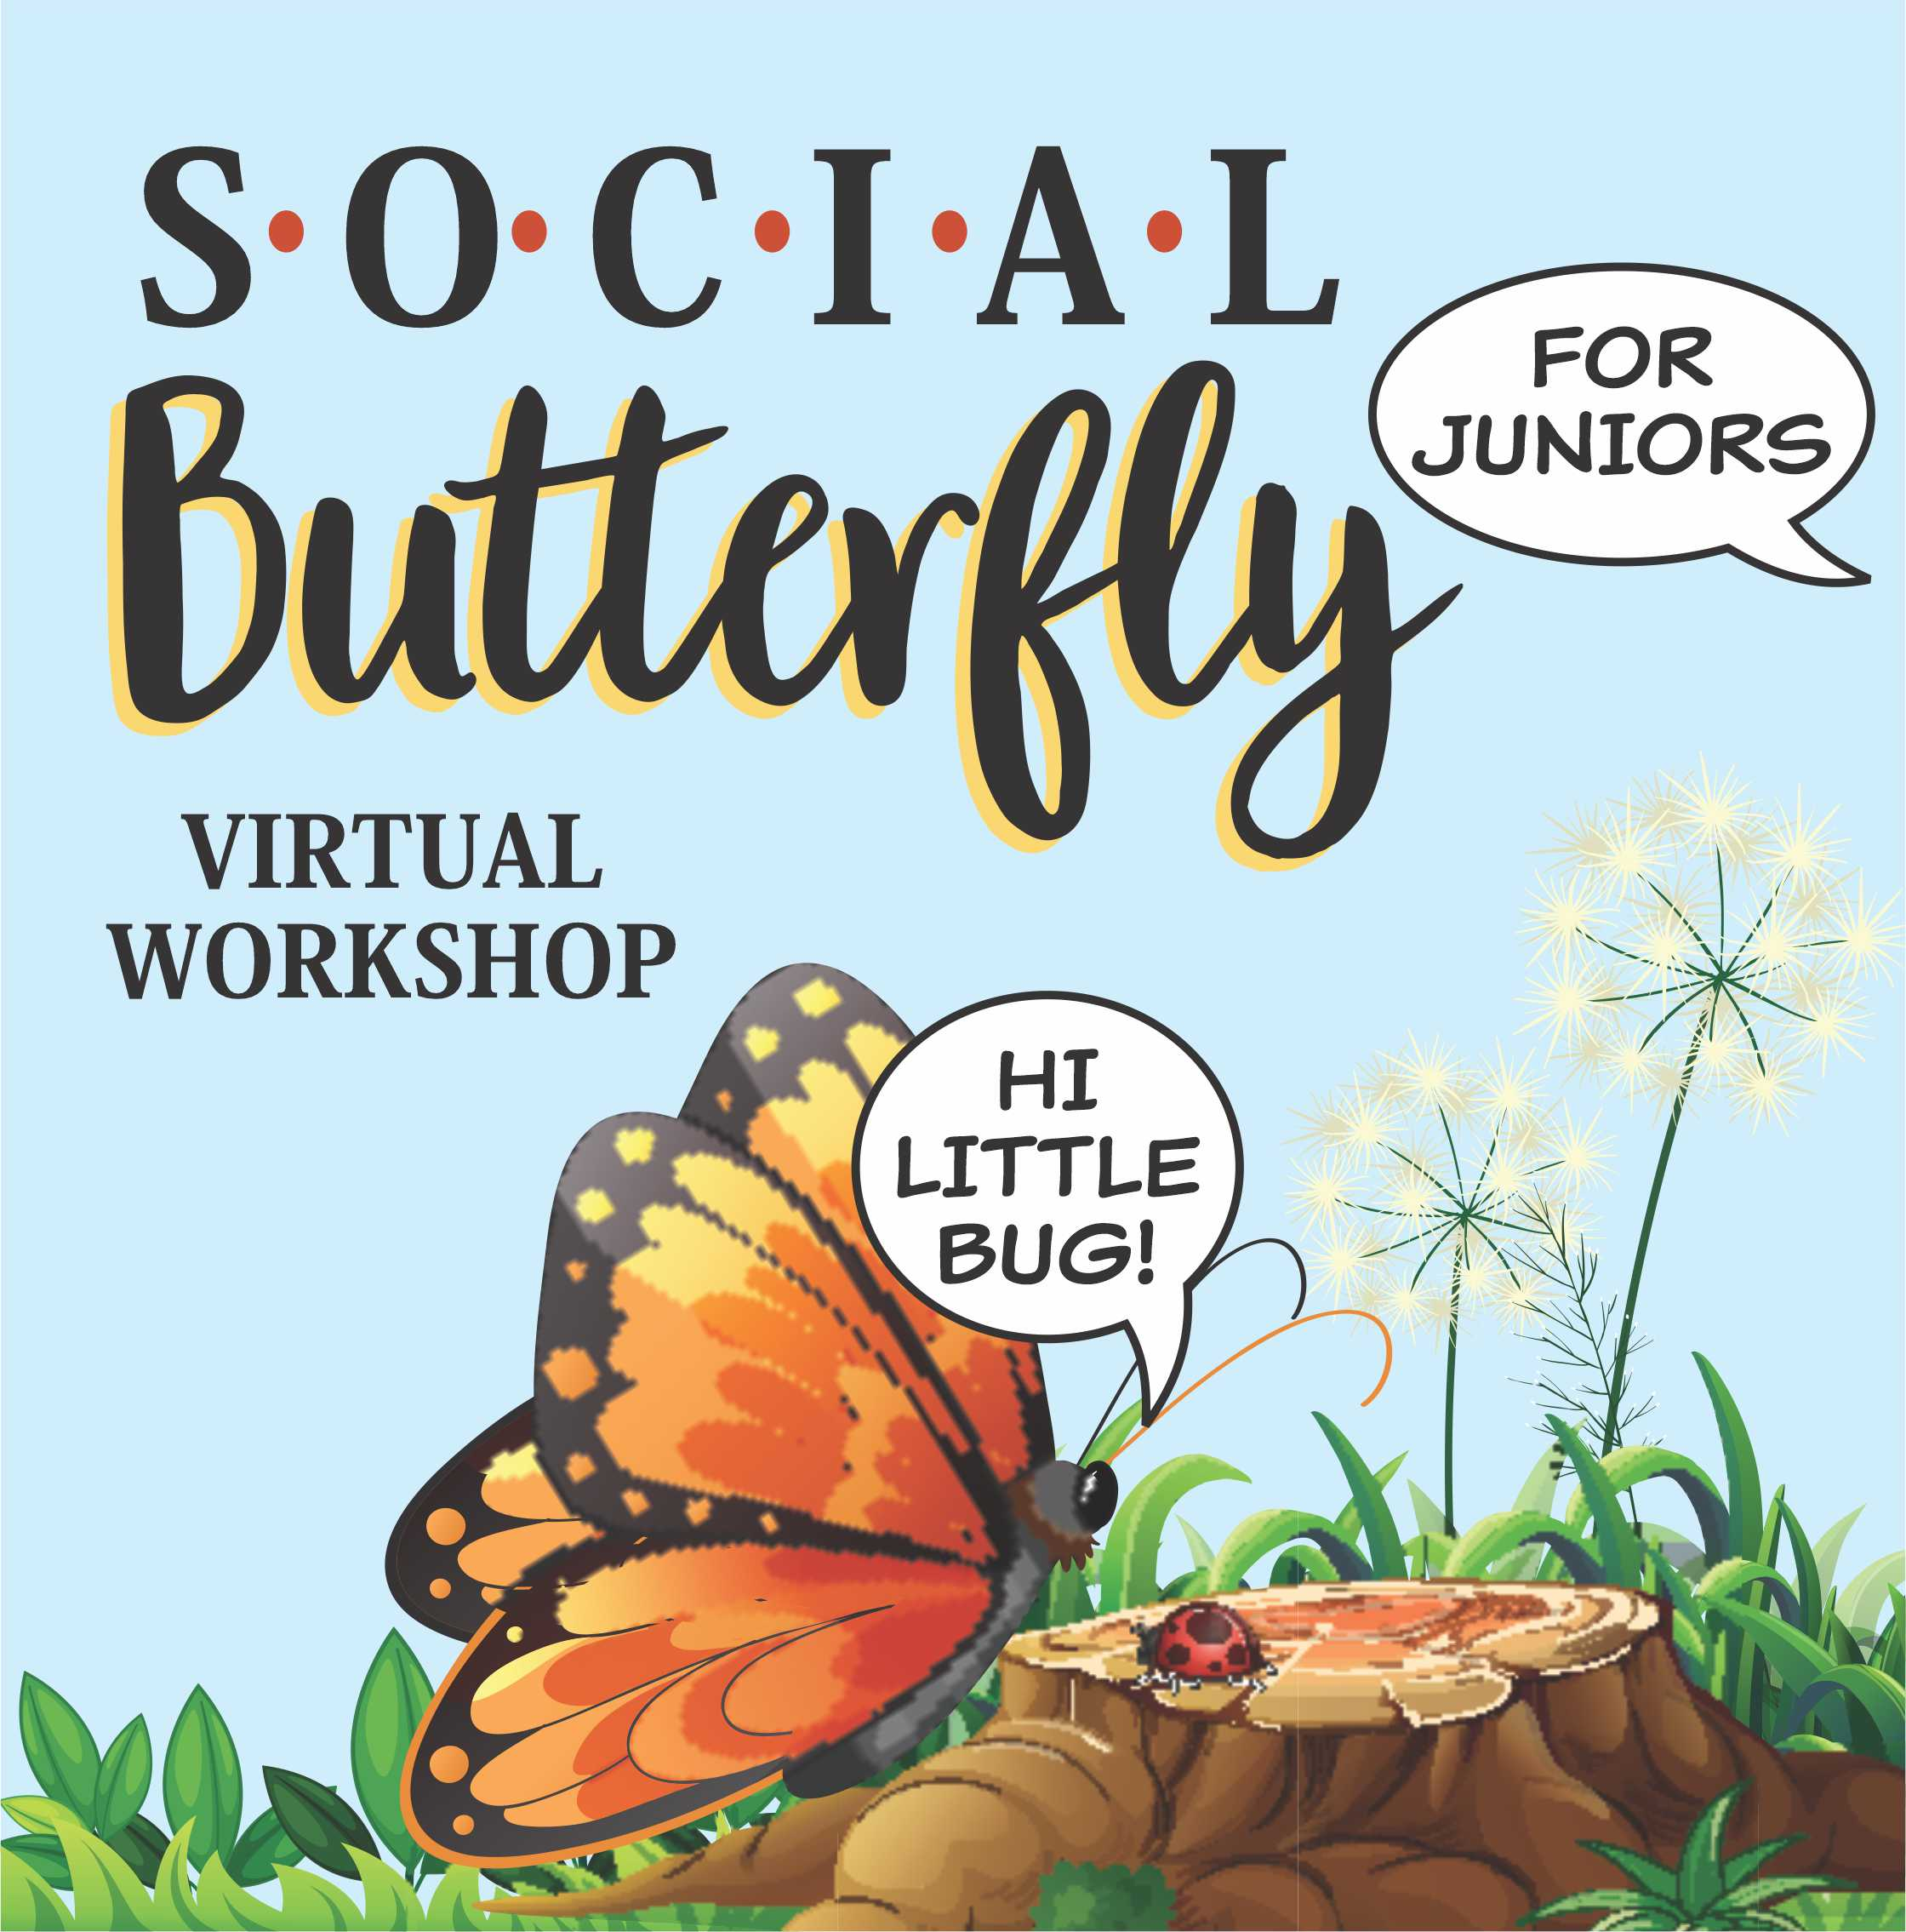 Girl Scout Social Butterfly Virtual Workshop for Juniors